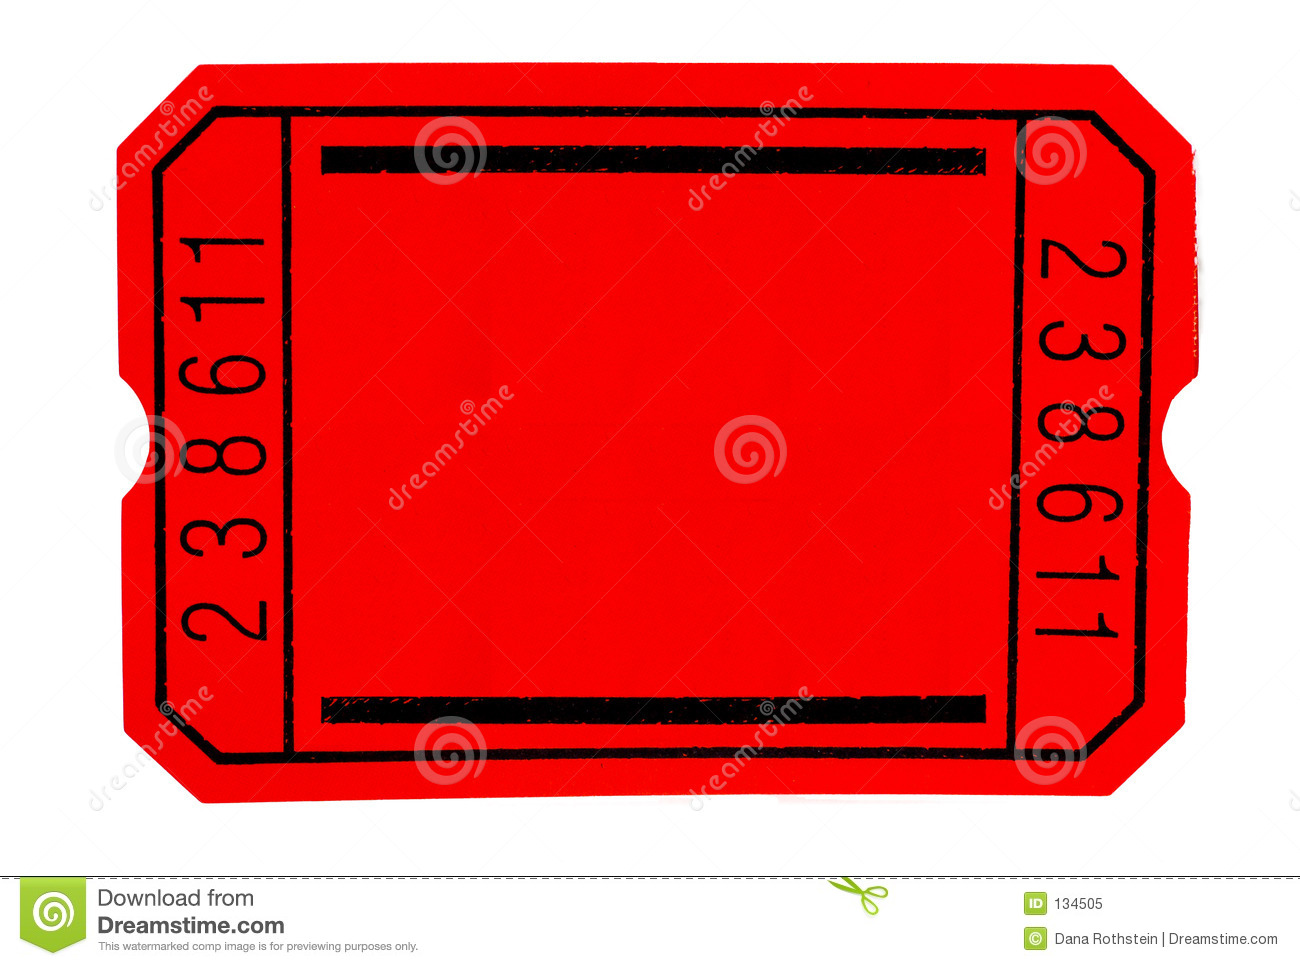 movie-ticket-clipart-black-ticket-134505.jpg